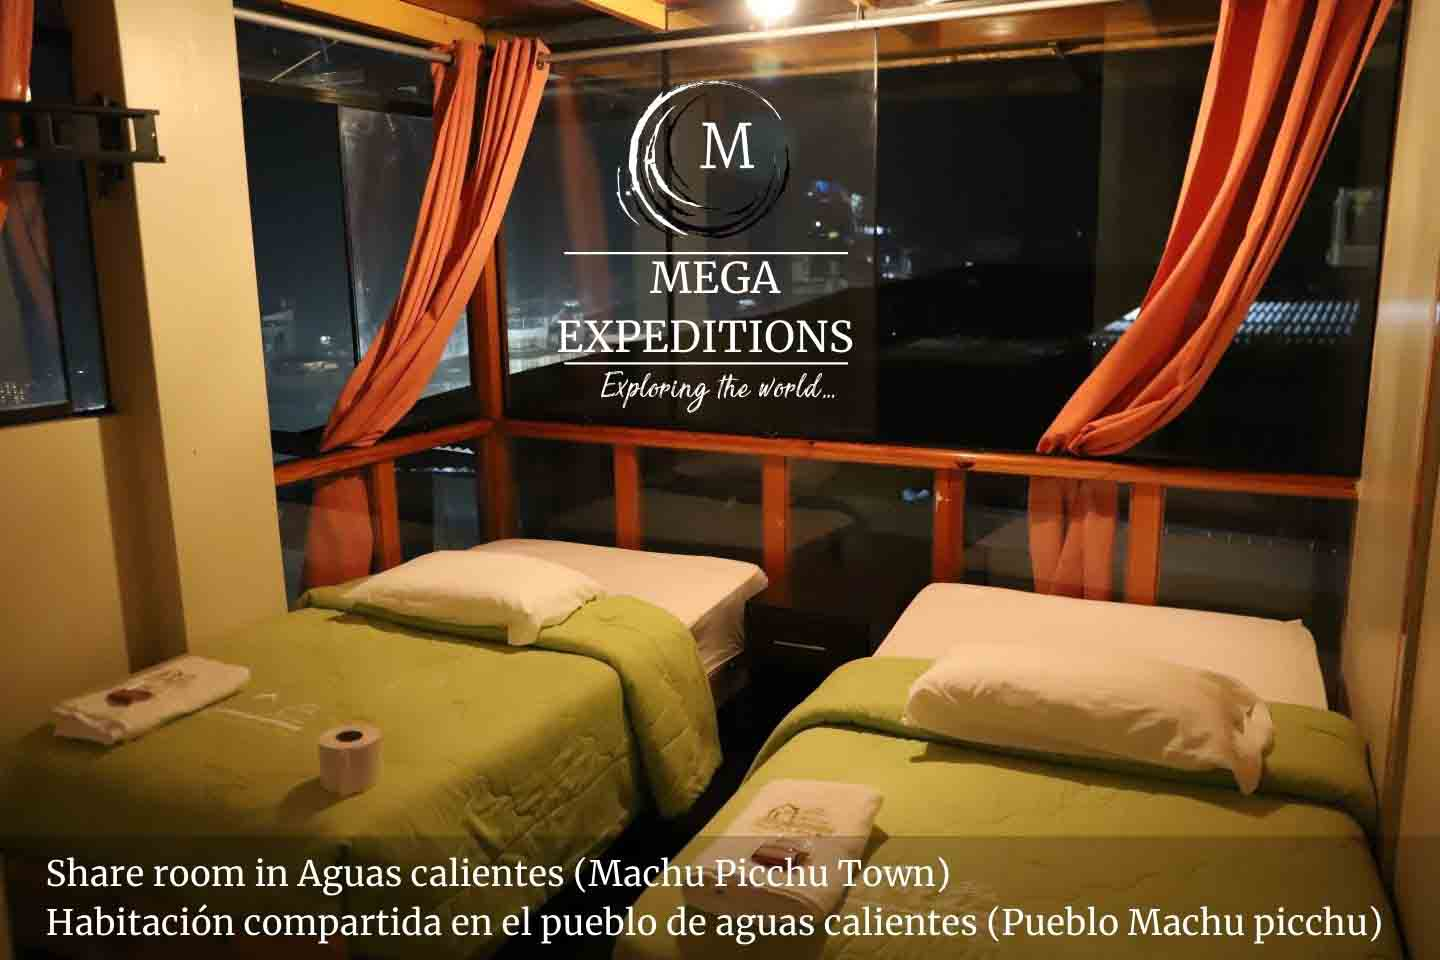 Hotel in Machu Picchu Town. Private room for couples and groups.